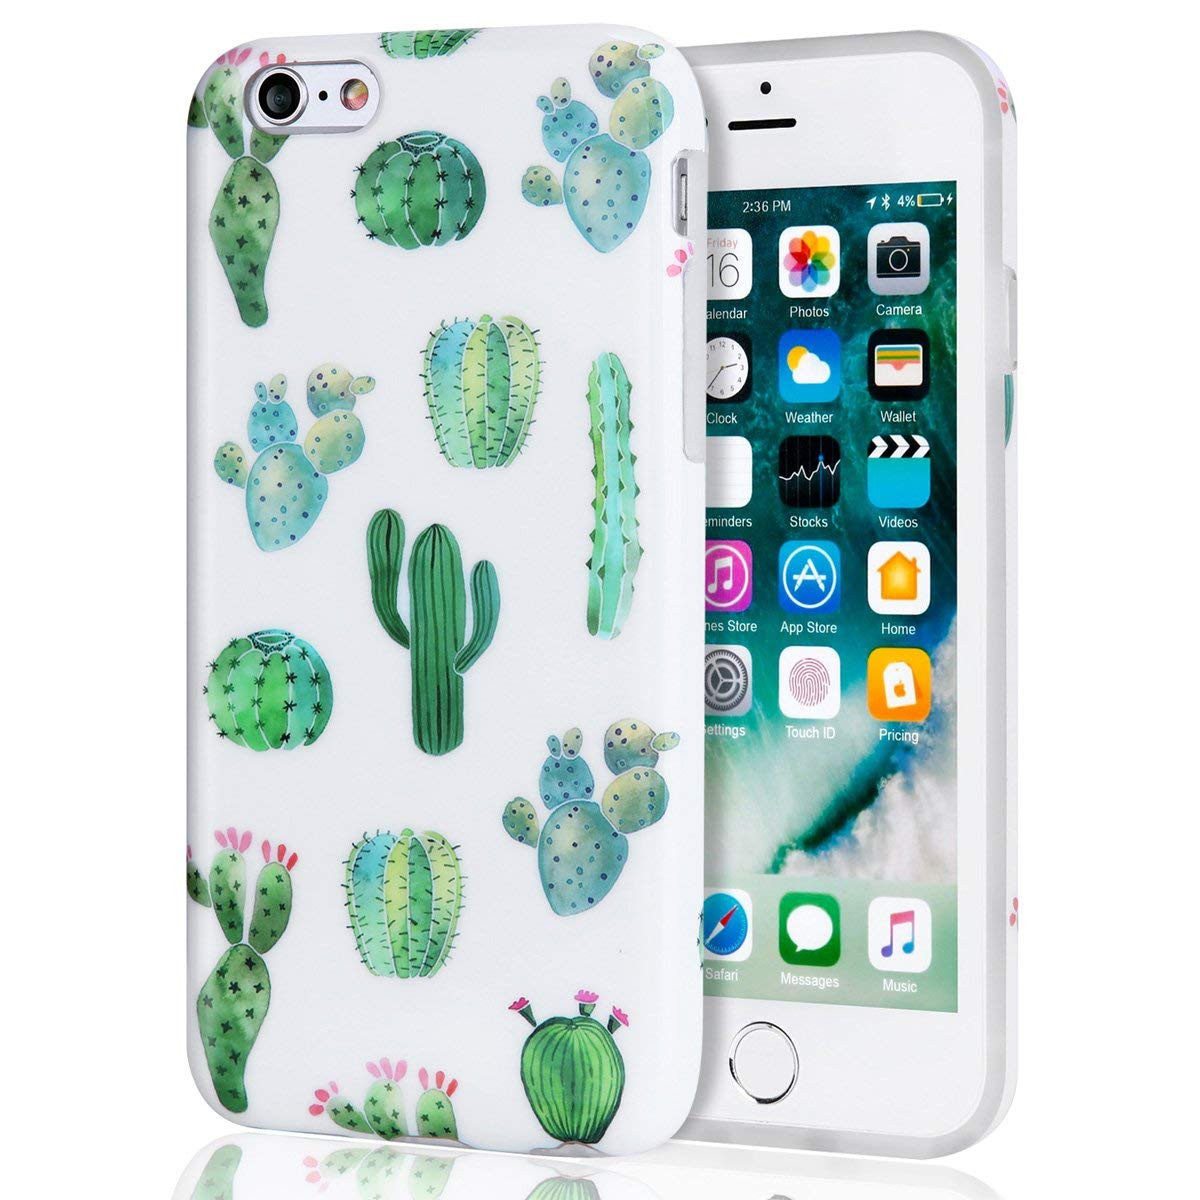 los angeles ed841 5a6a5 iPhone 6s Plus Case, Cactus iPhone 6 Plus Case for Girls, Women Best  Protective Cute Clear Slim Glossy TPU Soft Rubber Silicone White Green  Cover ...